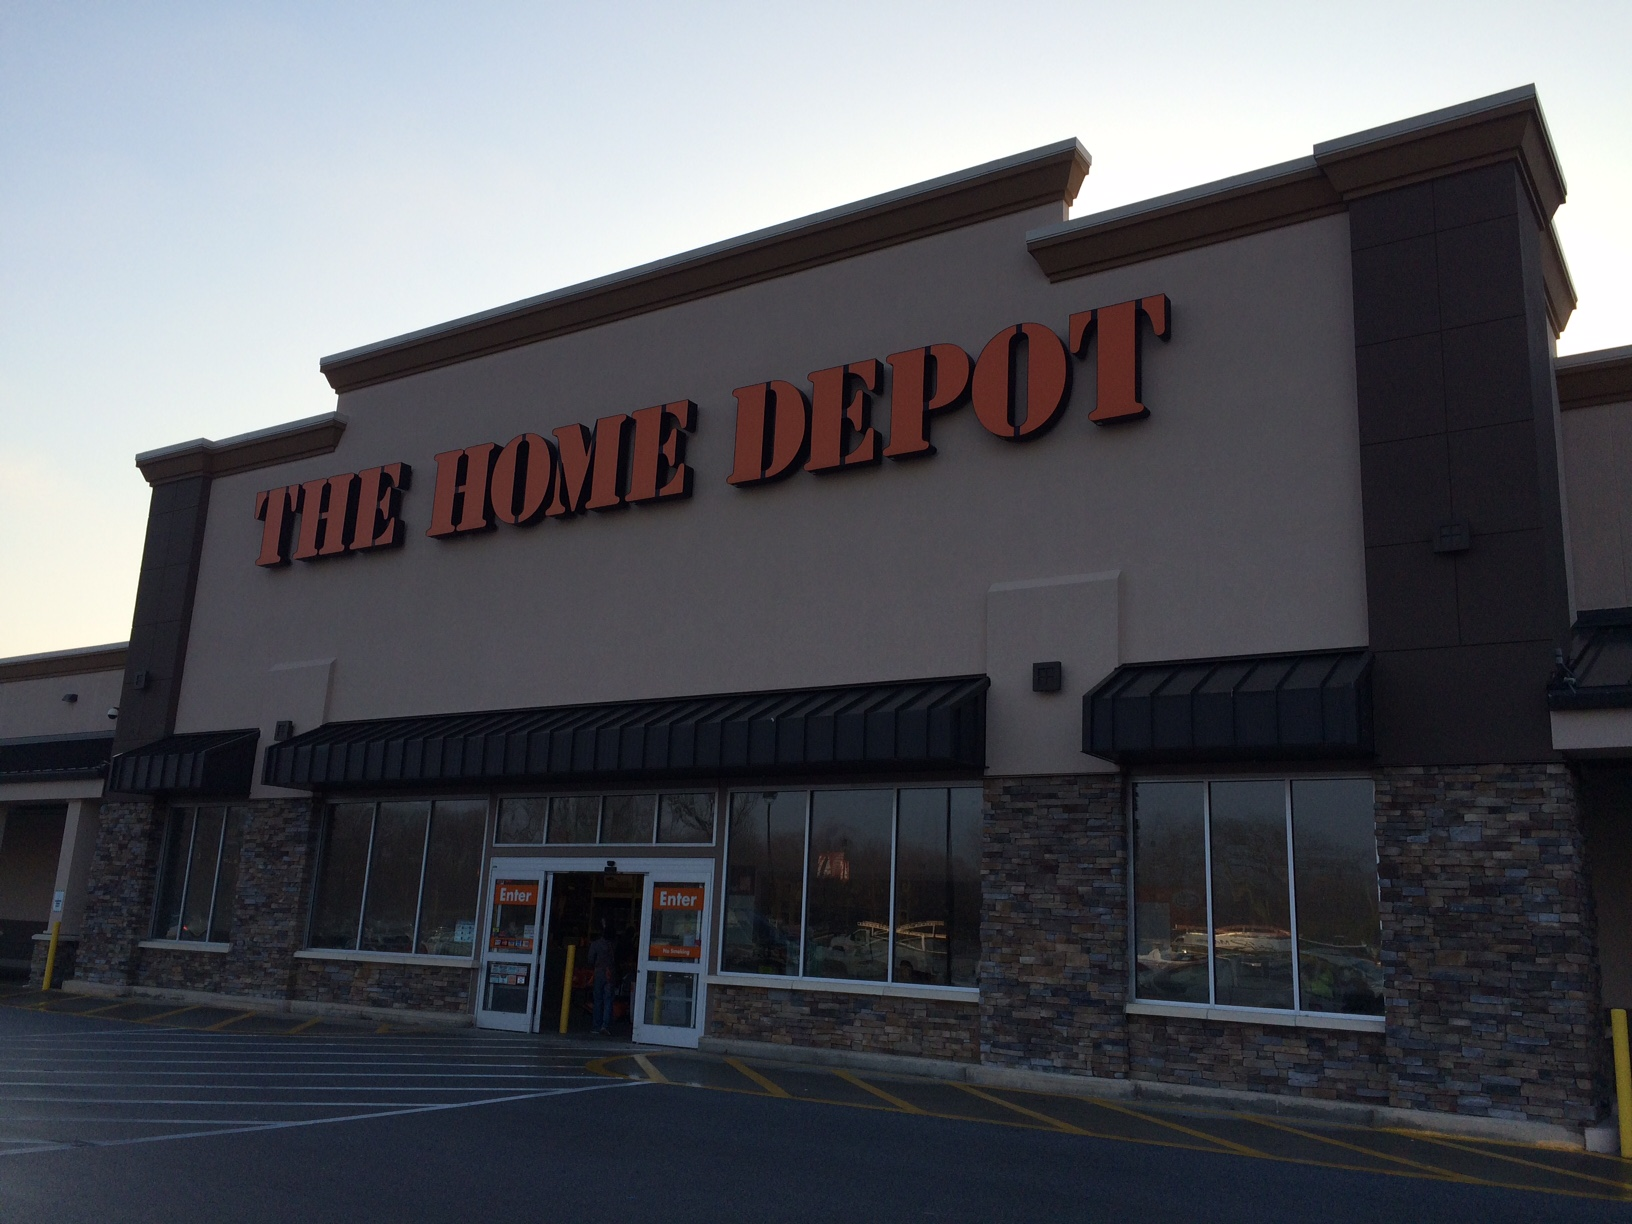 Home depot glen widing portland oregon home design 2017 for Home designers portland oregon